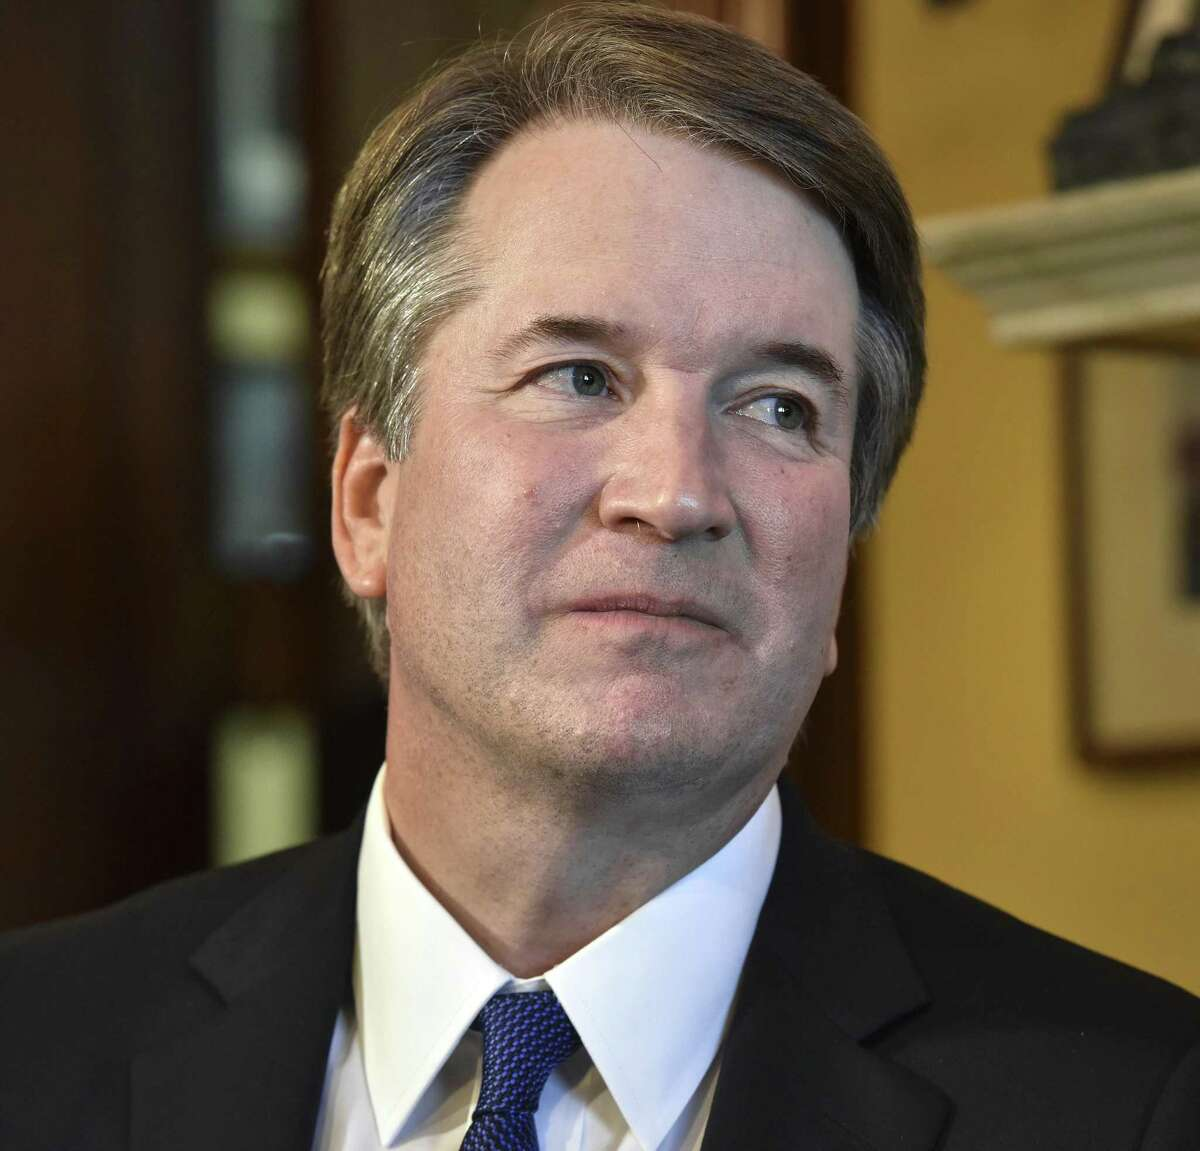 Supreme Court nominee Brett Kavanaugh visits Republican senators at the Capitol on July 11. MUST CREDIT: Washington Post photo by Bill O'Leary